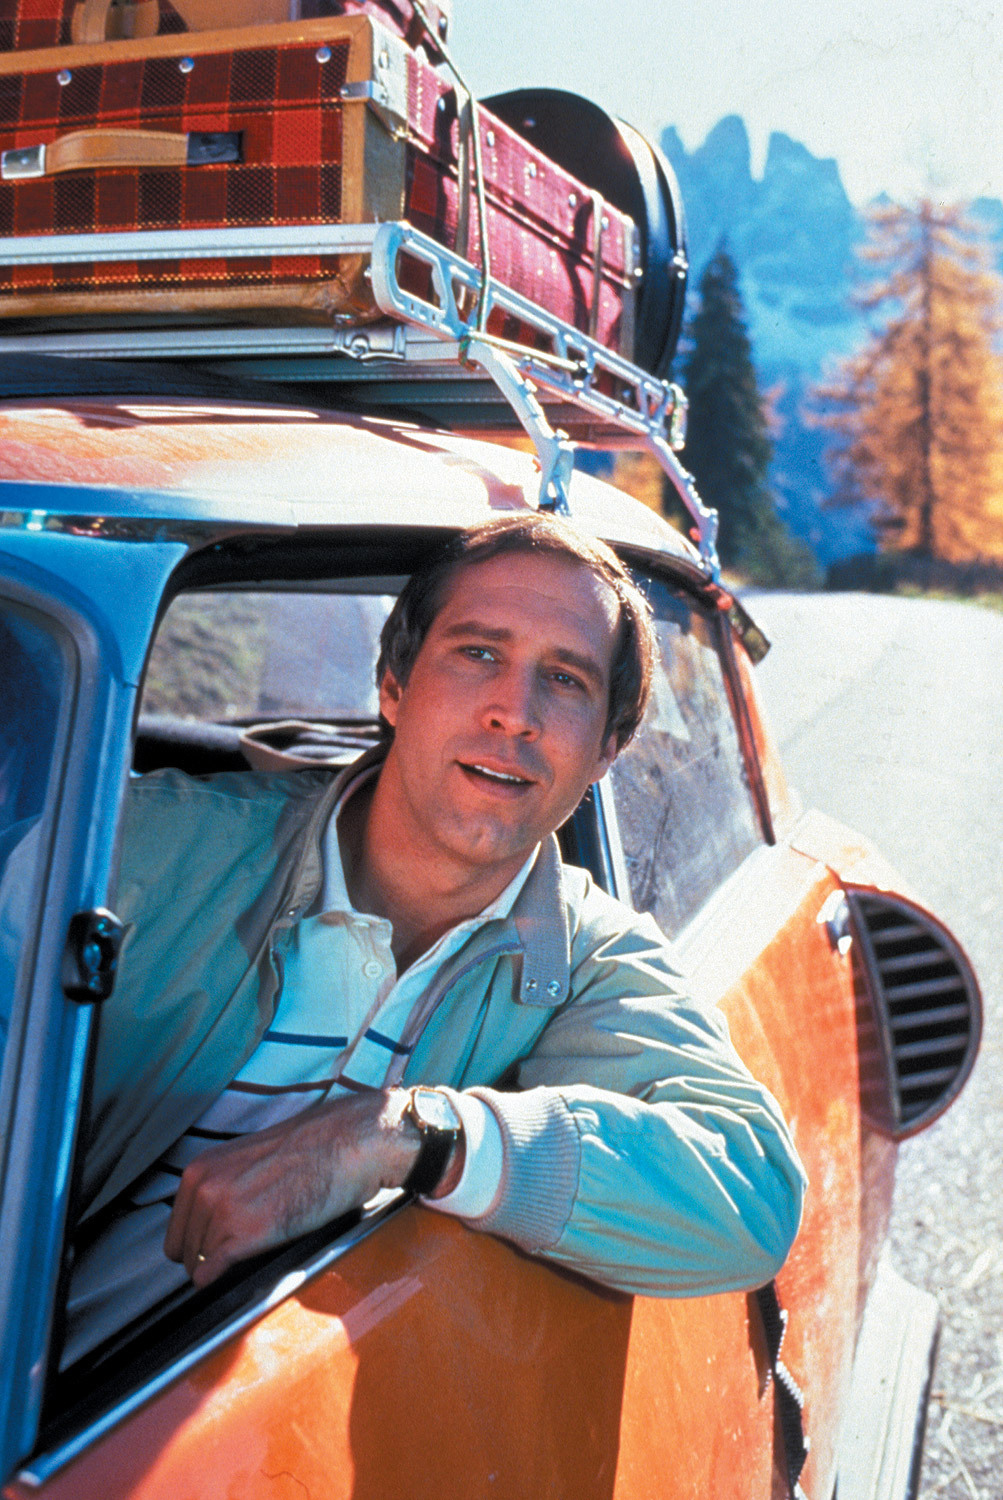 Used Vans For Sale Near Me >> Image: Chevy Chase in National Lampoon's Vacation, size ...